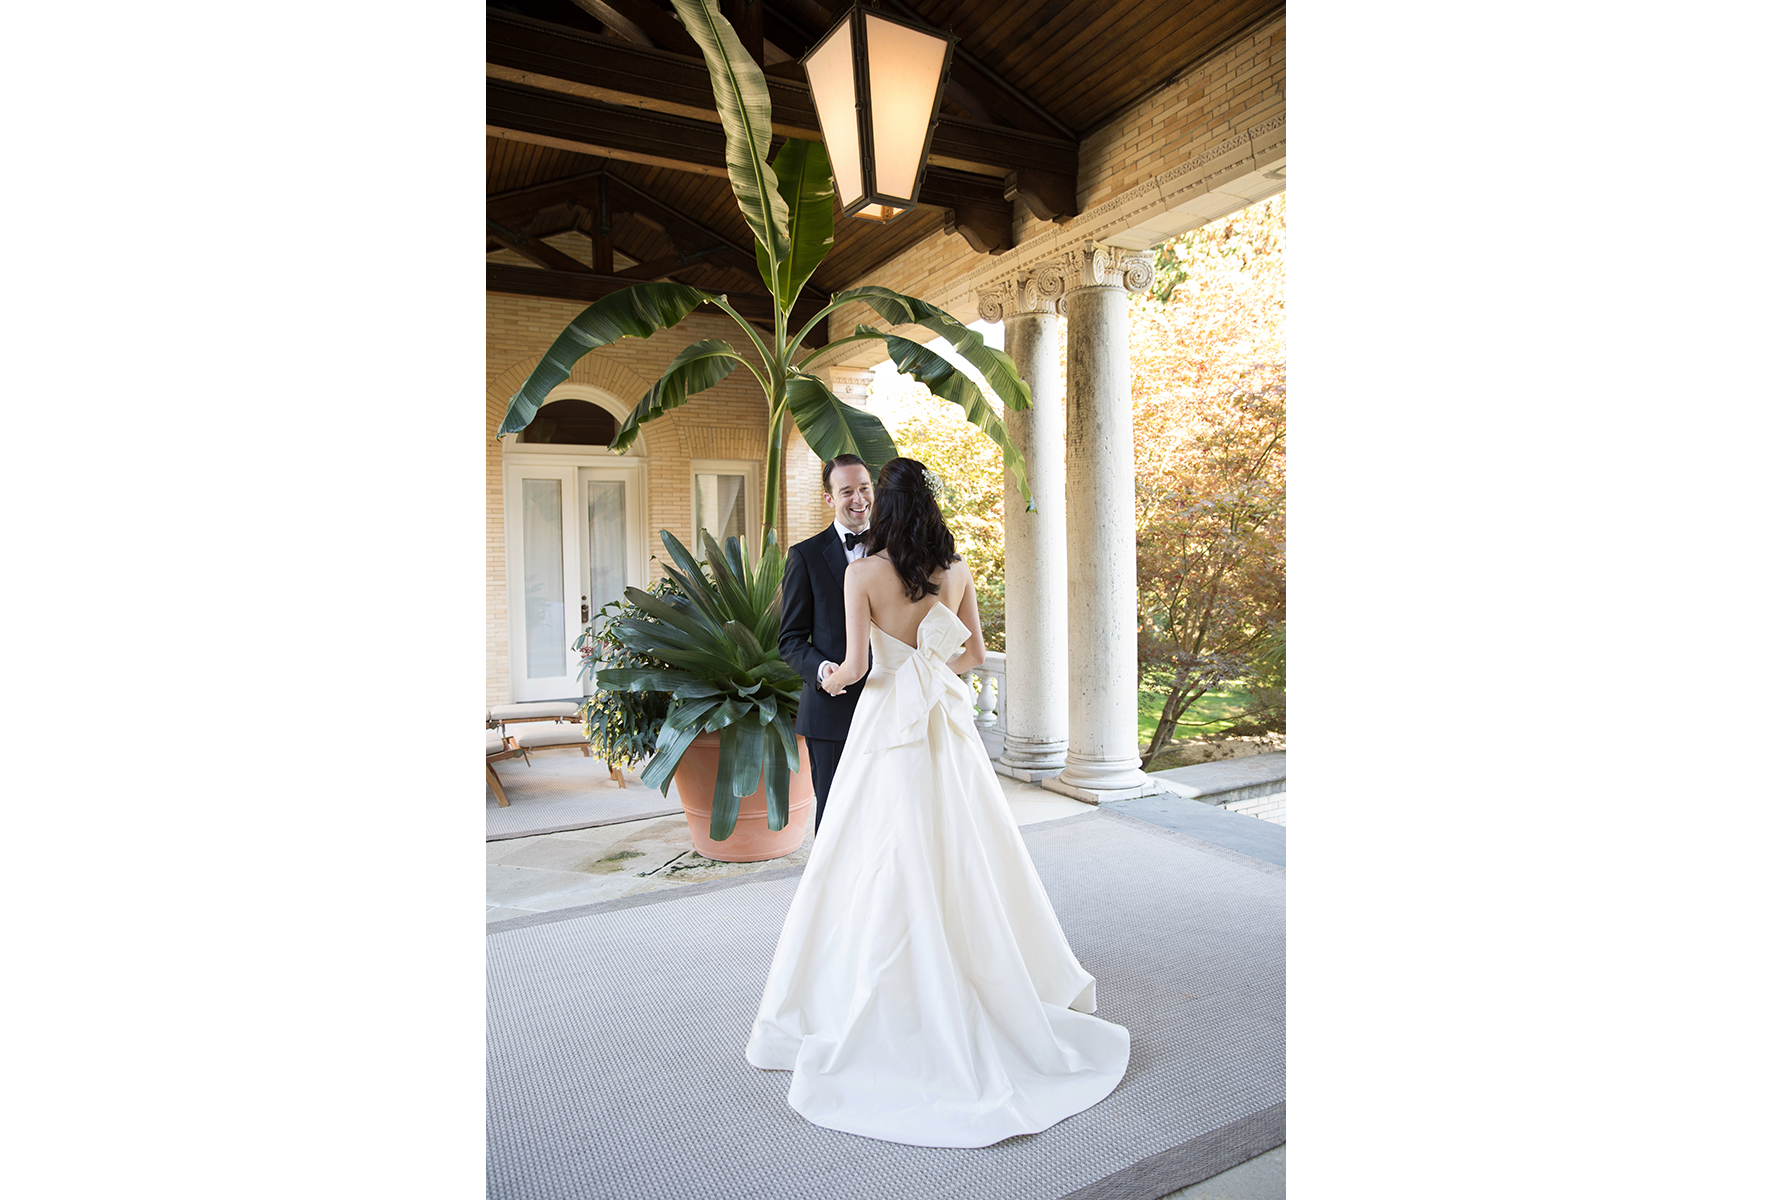 raquelreis_wedding_photography_wheatleigh_018.png